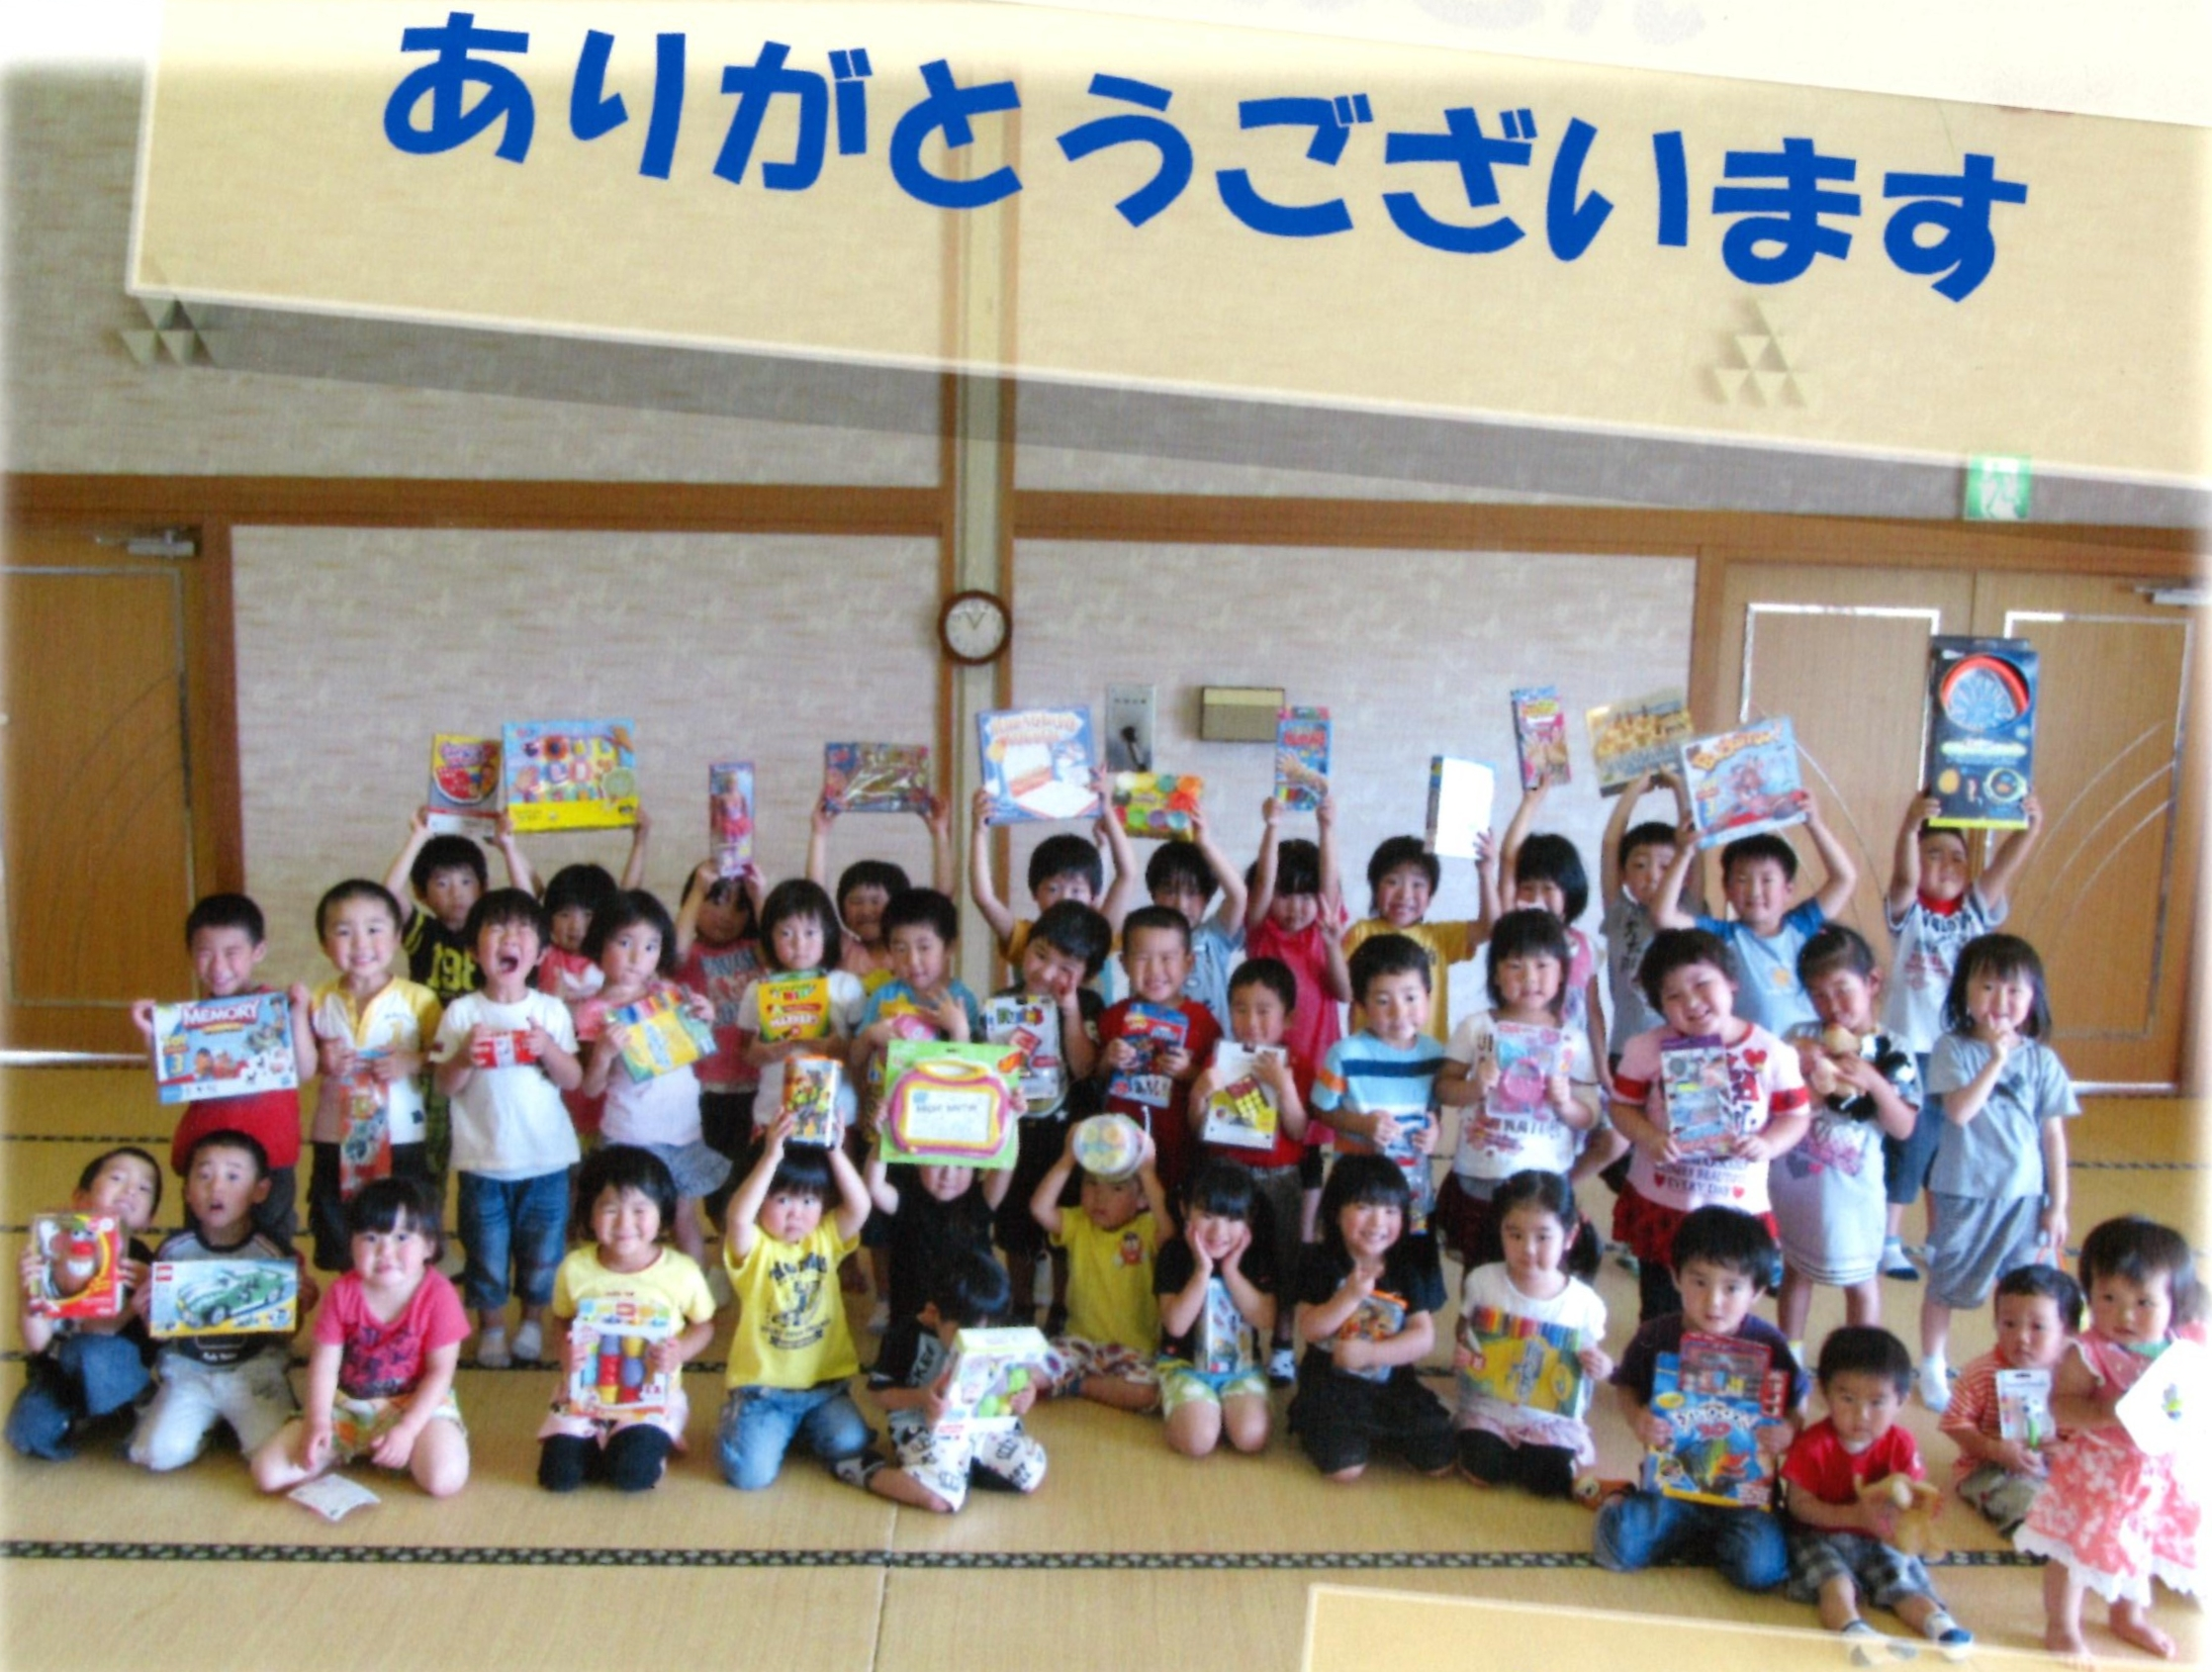 And now….Toynami!! (A Wave of Toys)